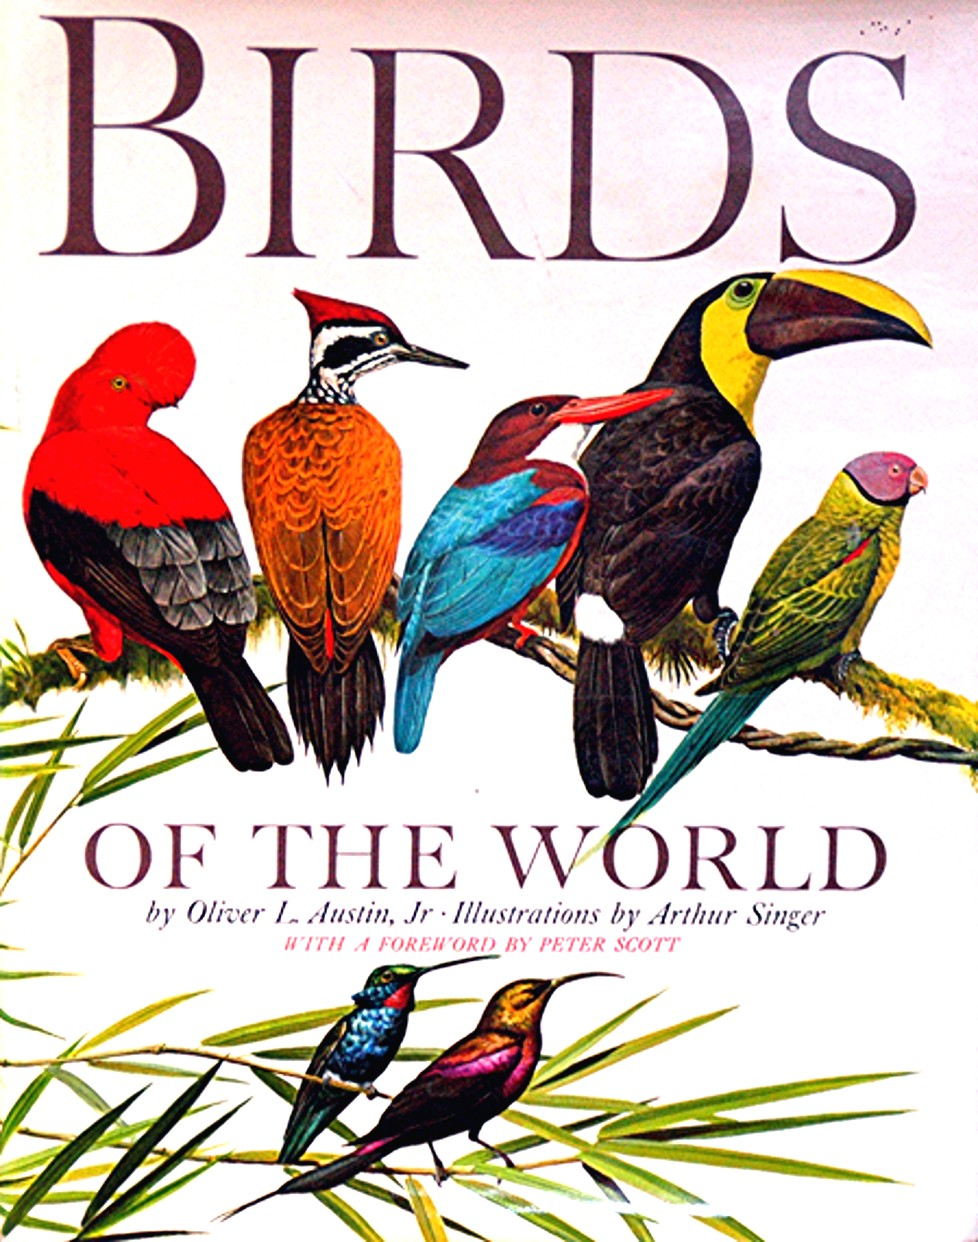 Top 10 books about birds